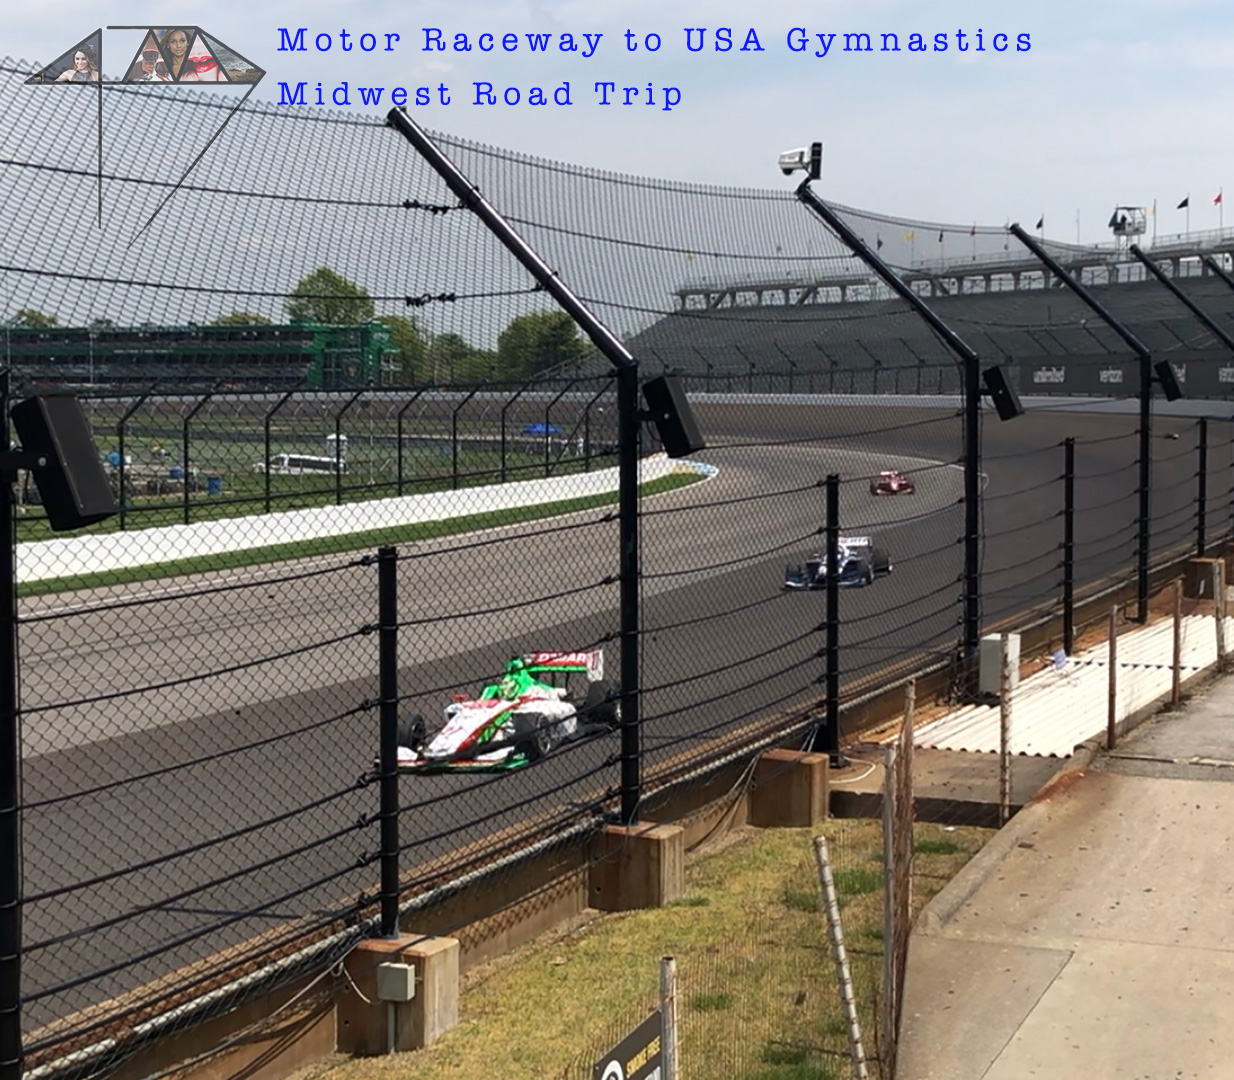 Indianapolis Motor Speedway Midwest Road Trip Travel 4Chion Lifestyle